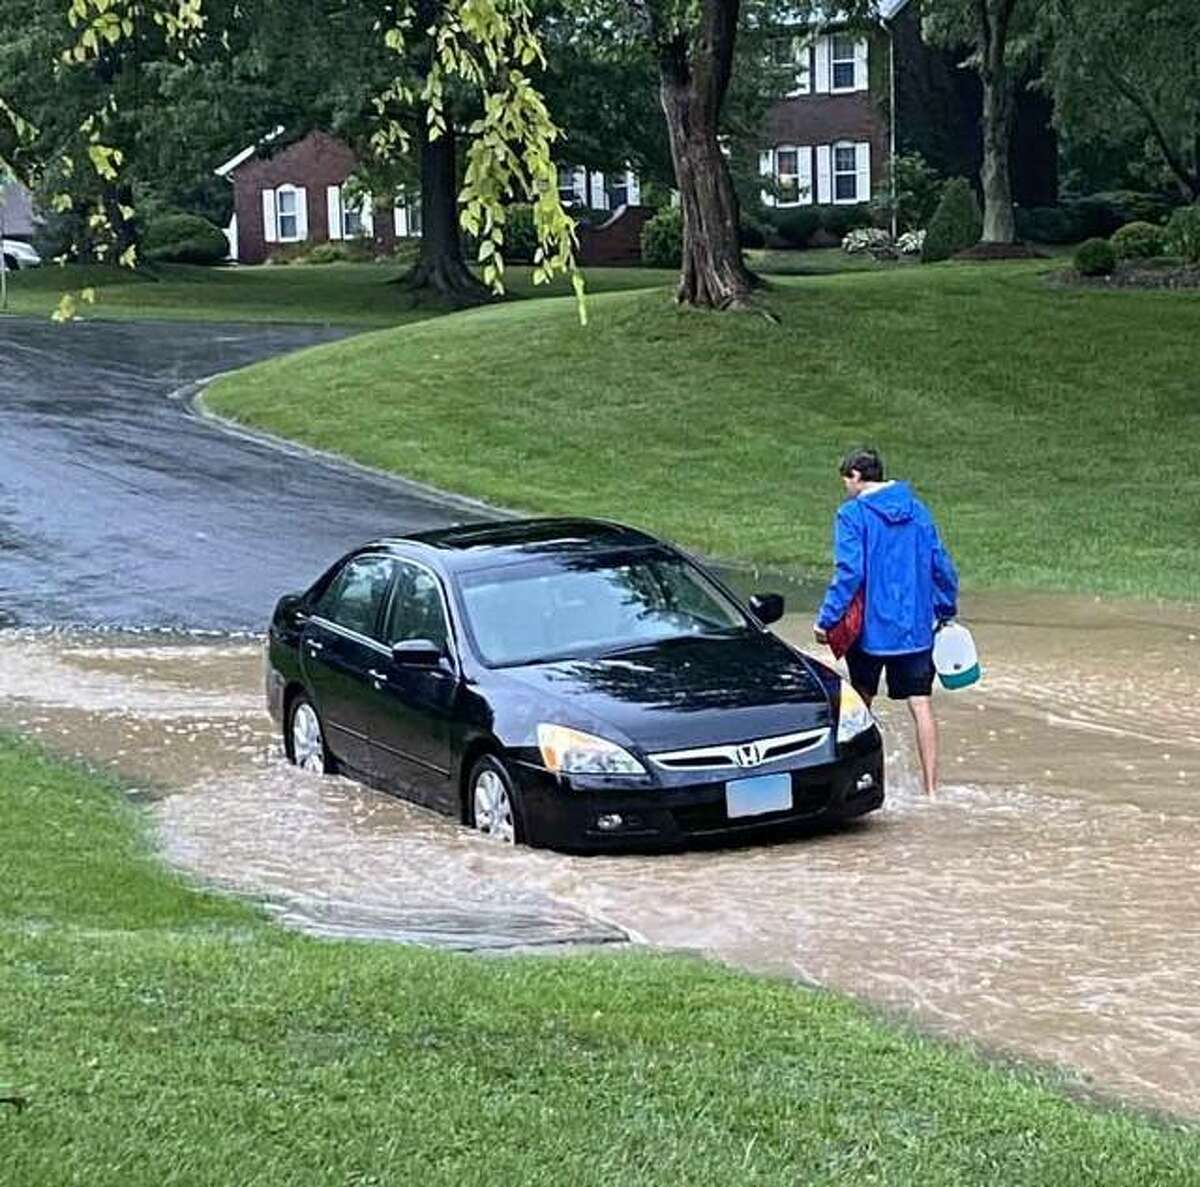 Rising flood waters force a motorist to move a car Sunday morning near Waterford Lane in Glen Carbon. Illinois State Police assisted Glen Carbon's fire and police departments in response to calls of multiple vehicles and passengers stranded on Route 162 Sunday morning due to flash flooding.